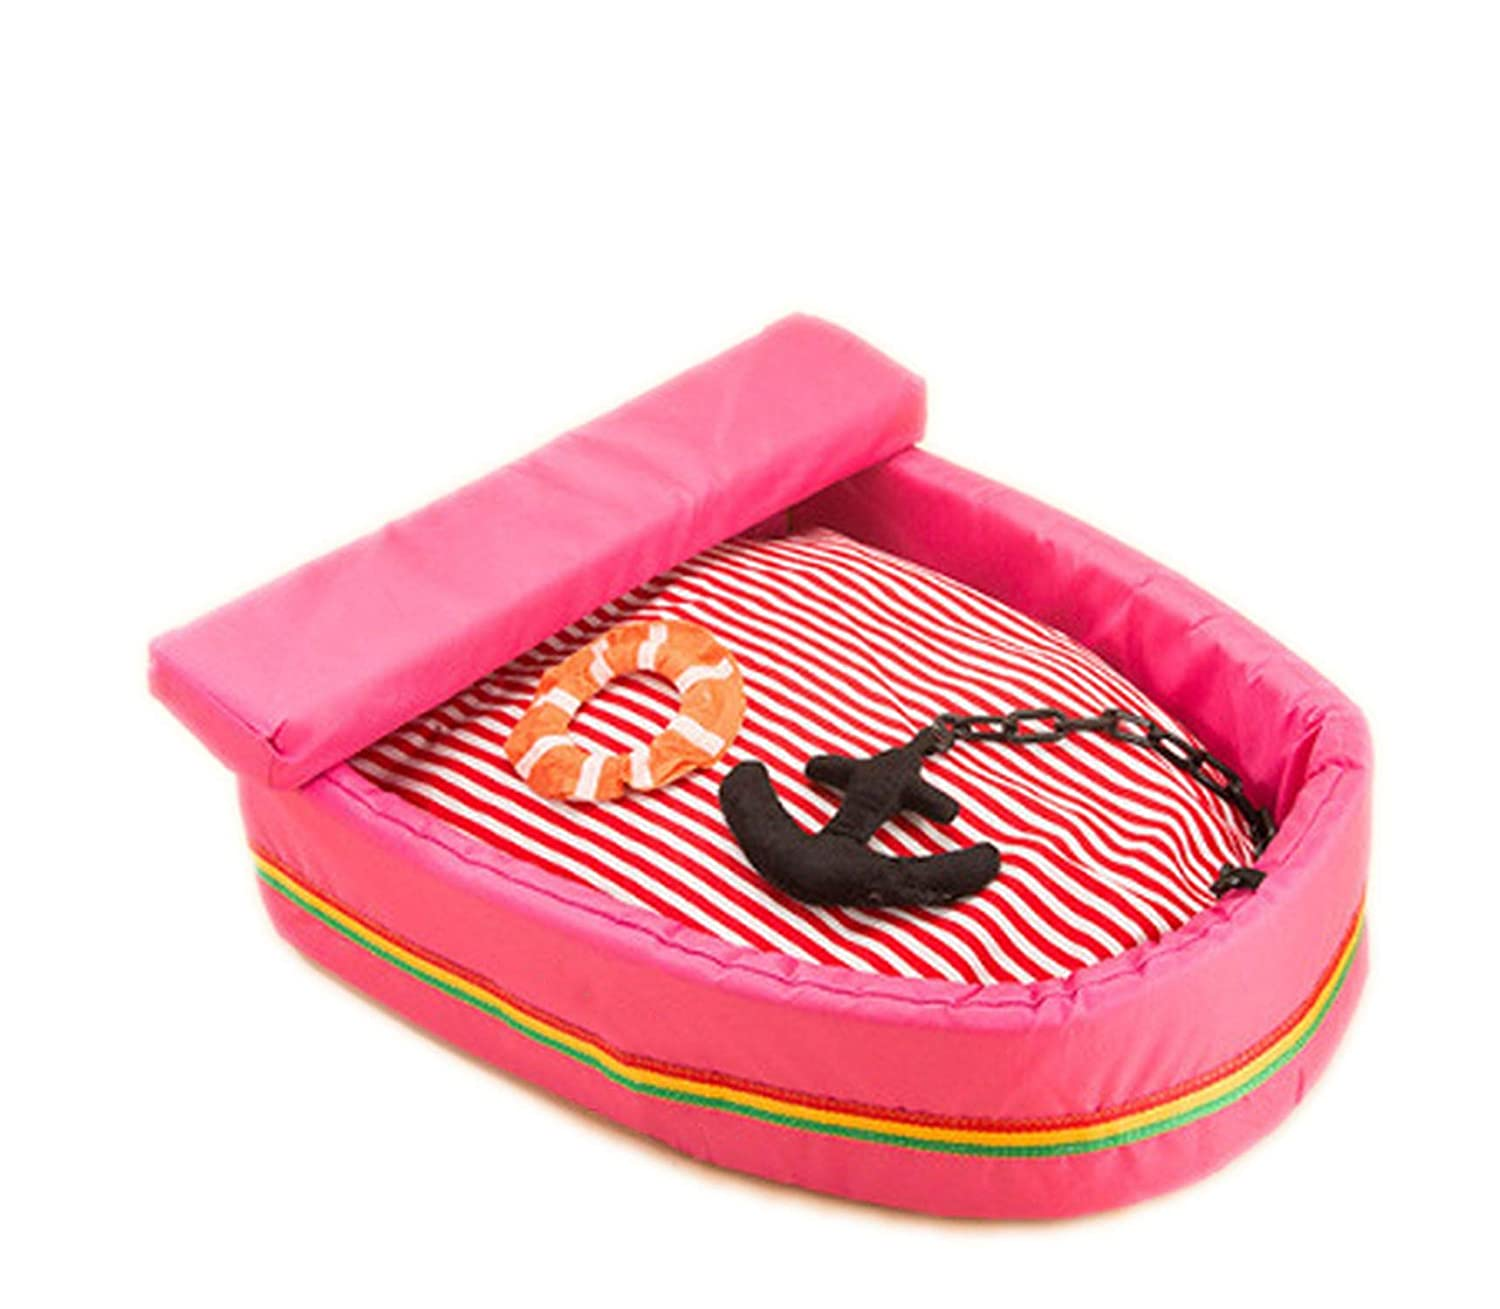 Pink L 705513cm pink L 705513cm Pet Cushion Dog Bed House Cat Bed Cushion Kennel Doggy Puppy Sofa Sleeping Bag Warm,Pink,L 70  55  13cm